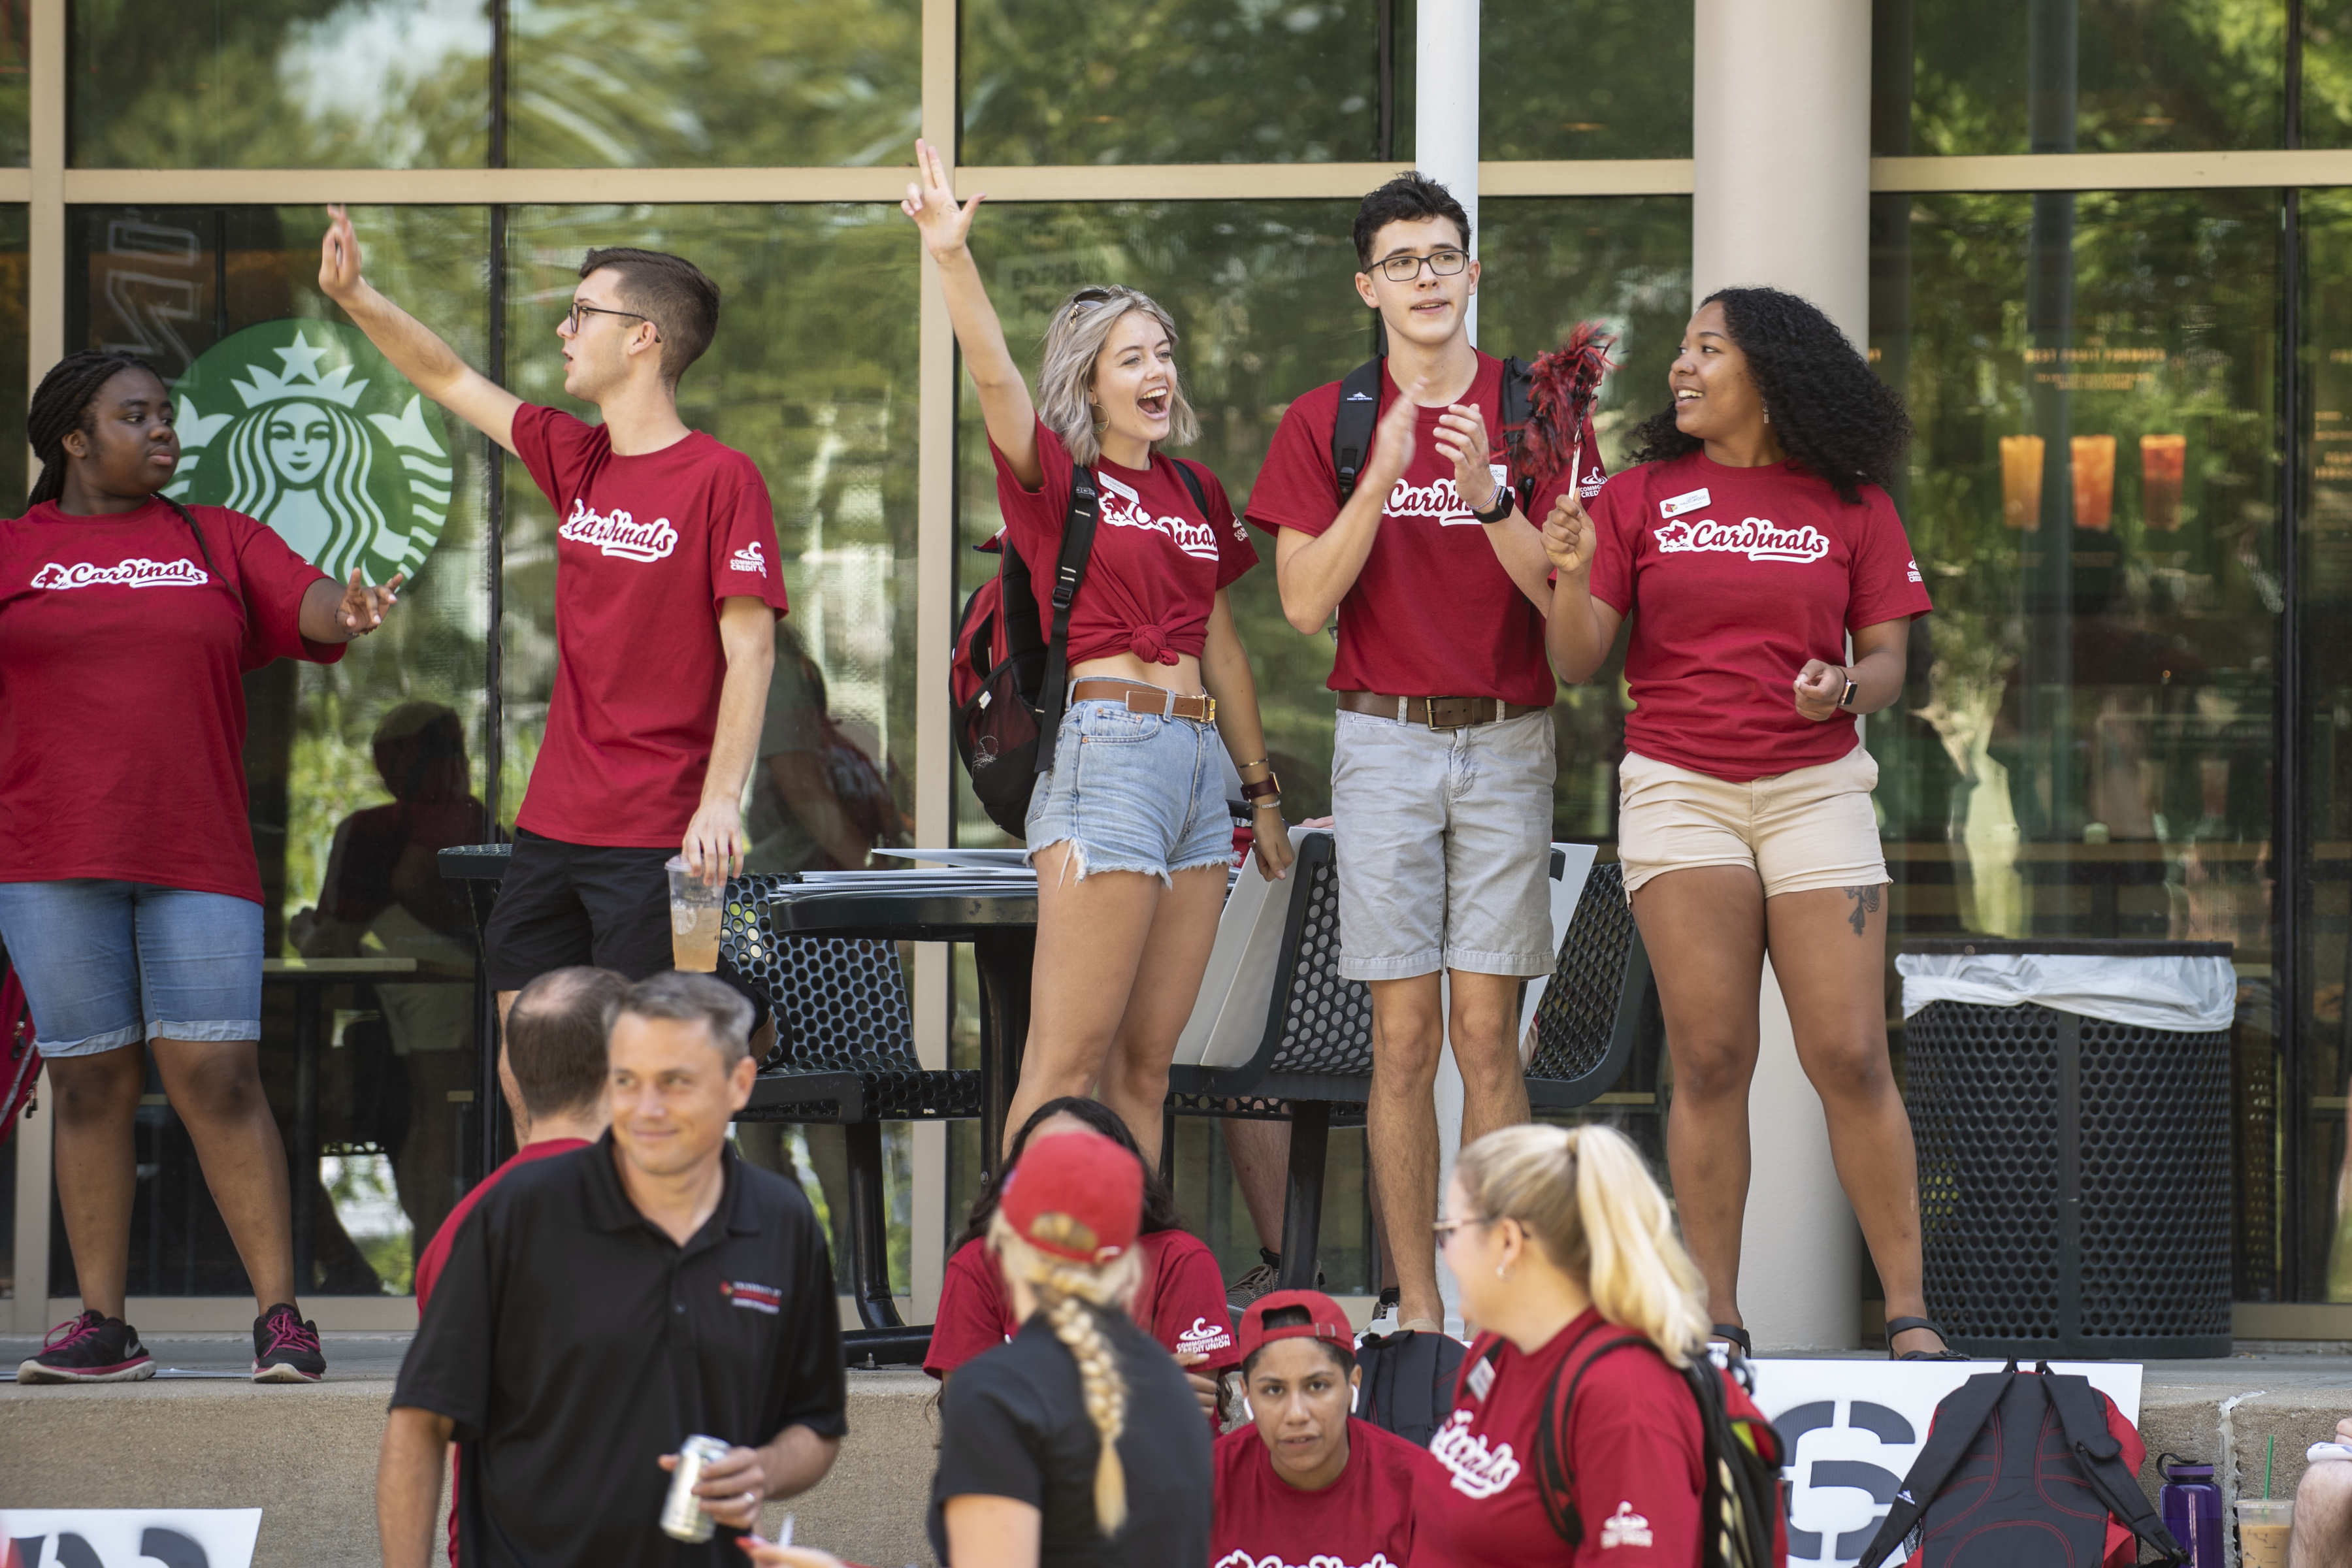 photos of students in cardinal t-shirts in front of Ekstrom library. attending alumni picnic event